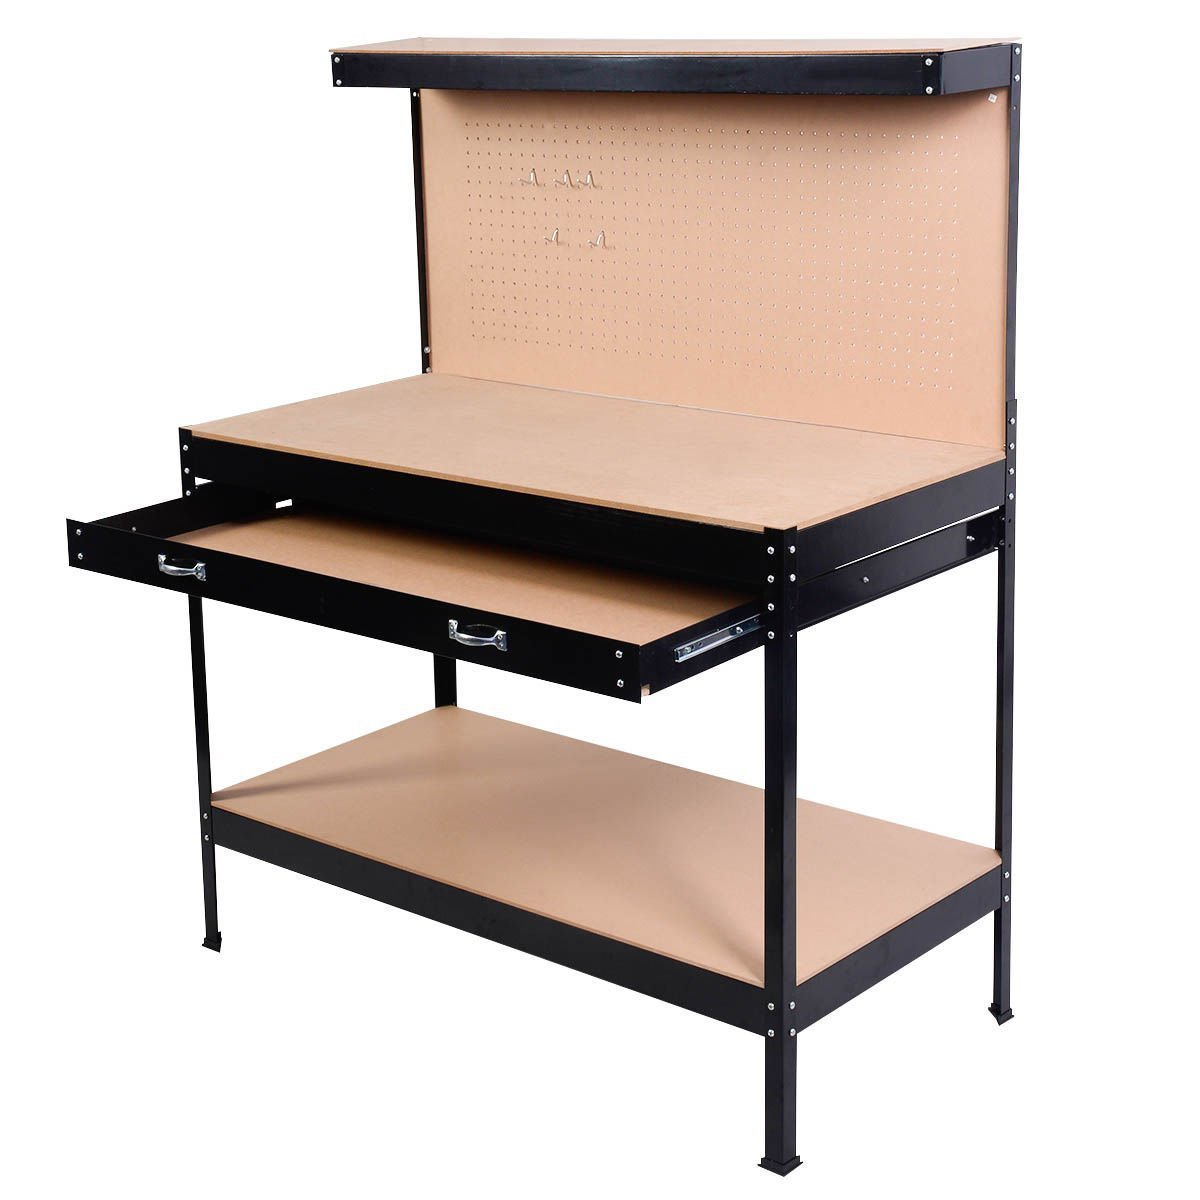 Work Bench Tool Storage Steel Frame Tool Workshop Table W/ Drawer and Peg Boar Bonus free ebook By Allgoodsdelight365 by allgoodsdelight365 (Image #5)